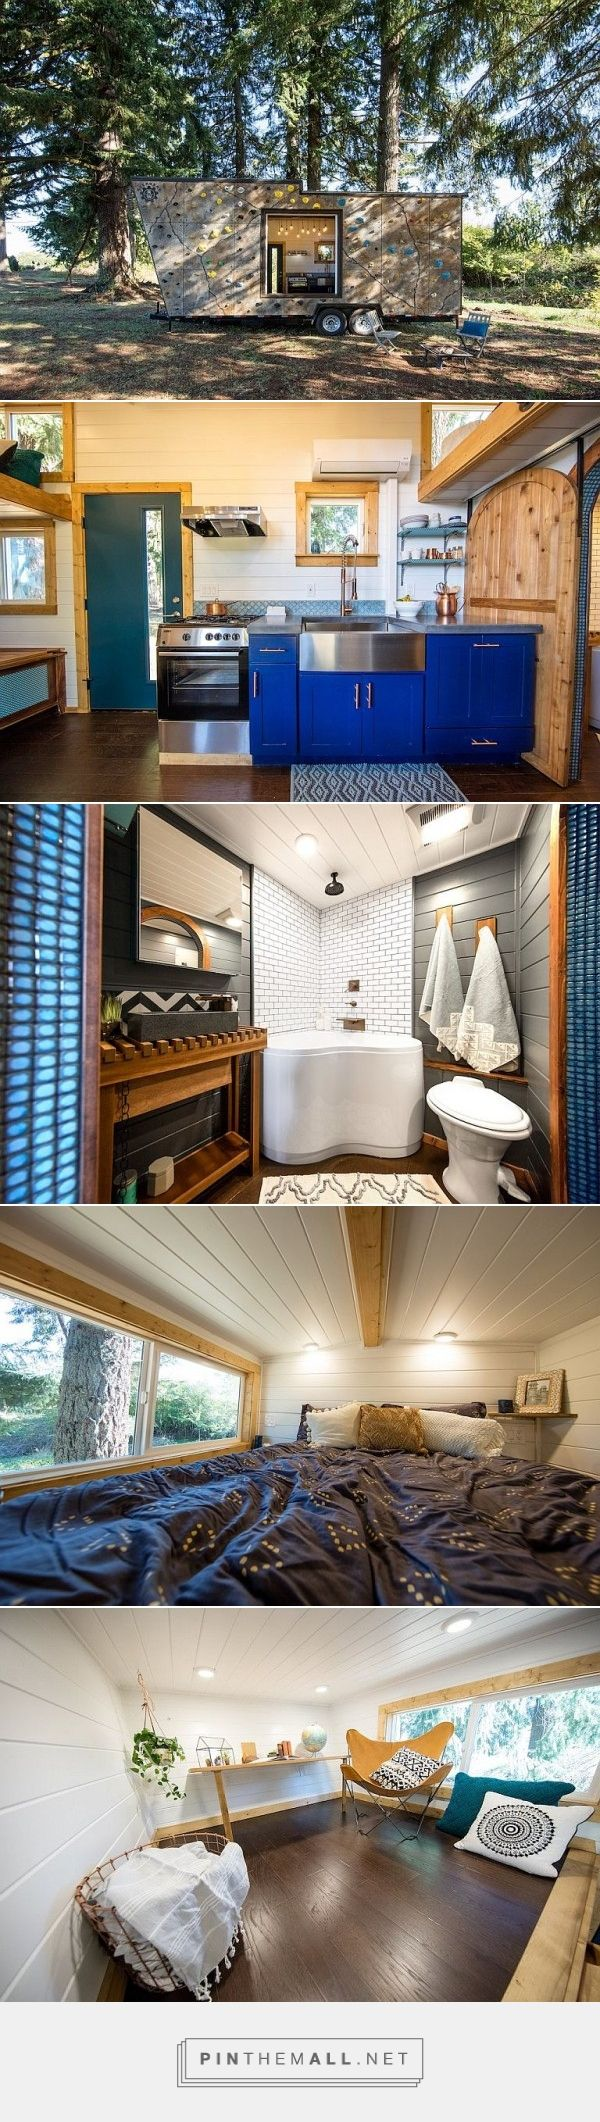 Luxury THOW tiny house on wheels with adventure outside, country charm inside